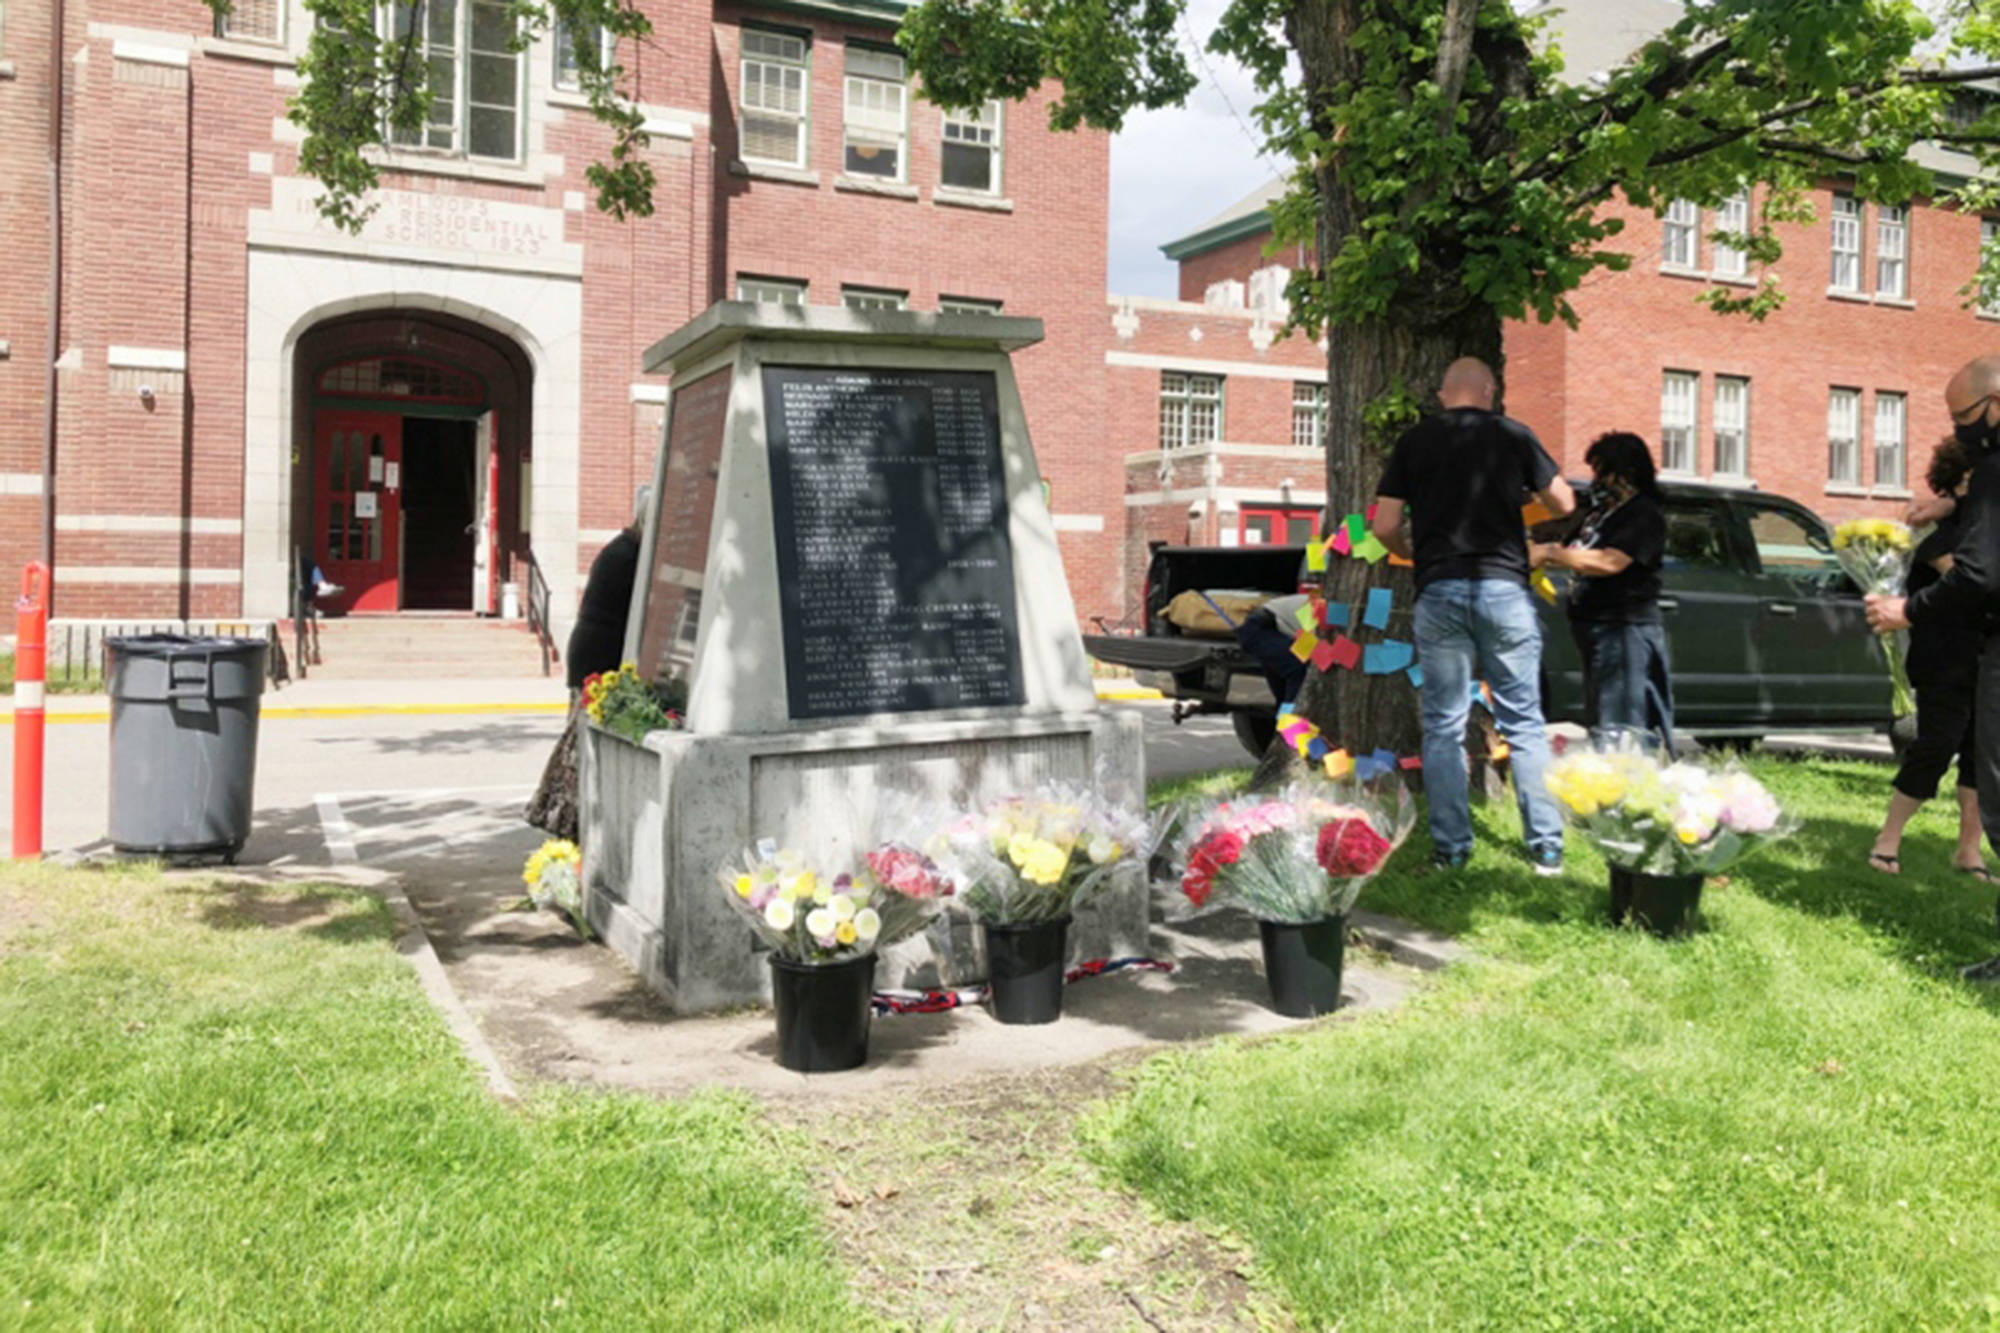 Members of the public have been visiting the memorial in front of the Kamloops Indian Residential School building, dropping off flowers as a show of support to the Tk'emlups te Secwepemc community in wake of the discovery of the remains of 215 children who attended the school, which operated between 1890 and 1977. (Ian Matheson photo)